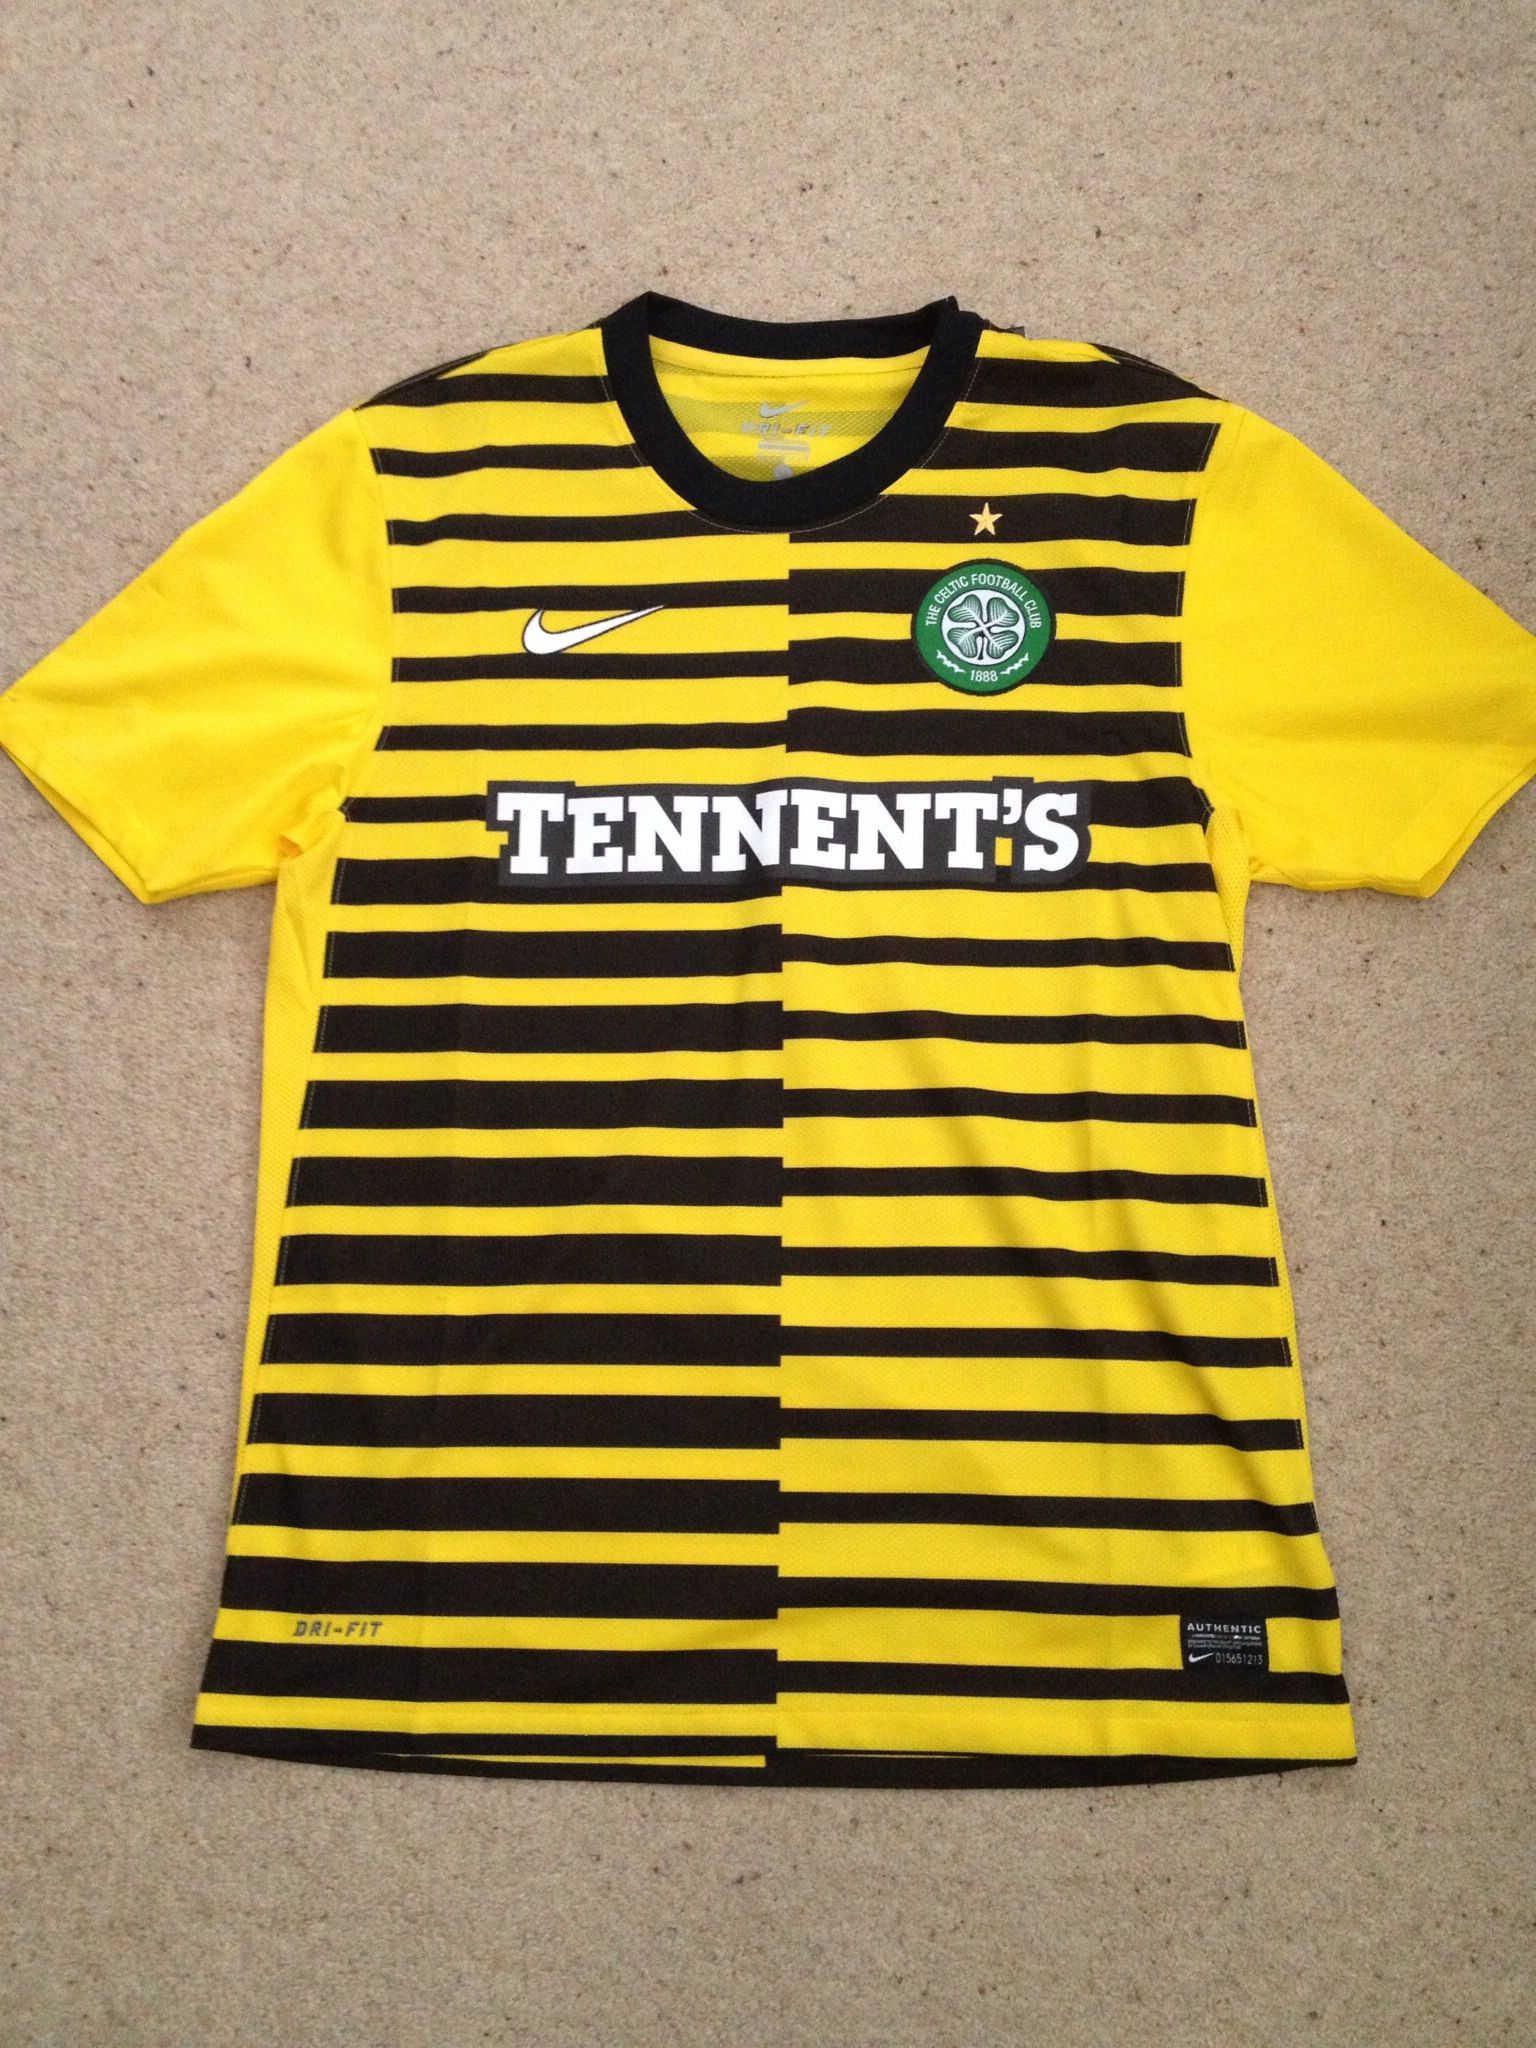 Celtic Away shirt, that is without doubt a marmite creation! I'm sorry to say that personally, this scores low 4/10